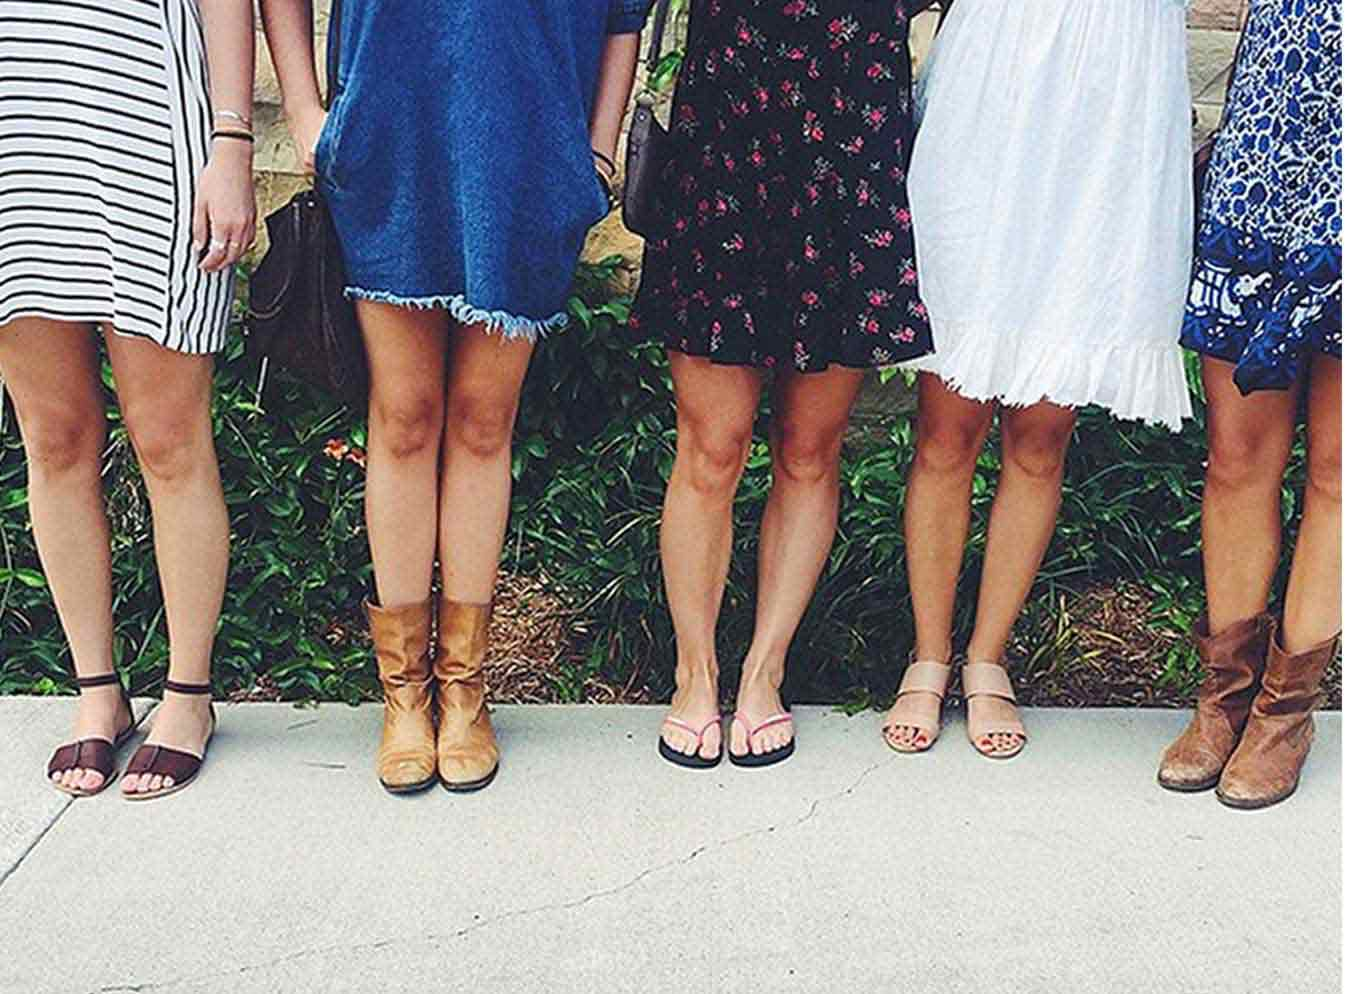 Row of girls legs